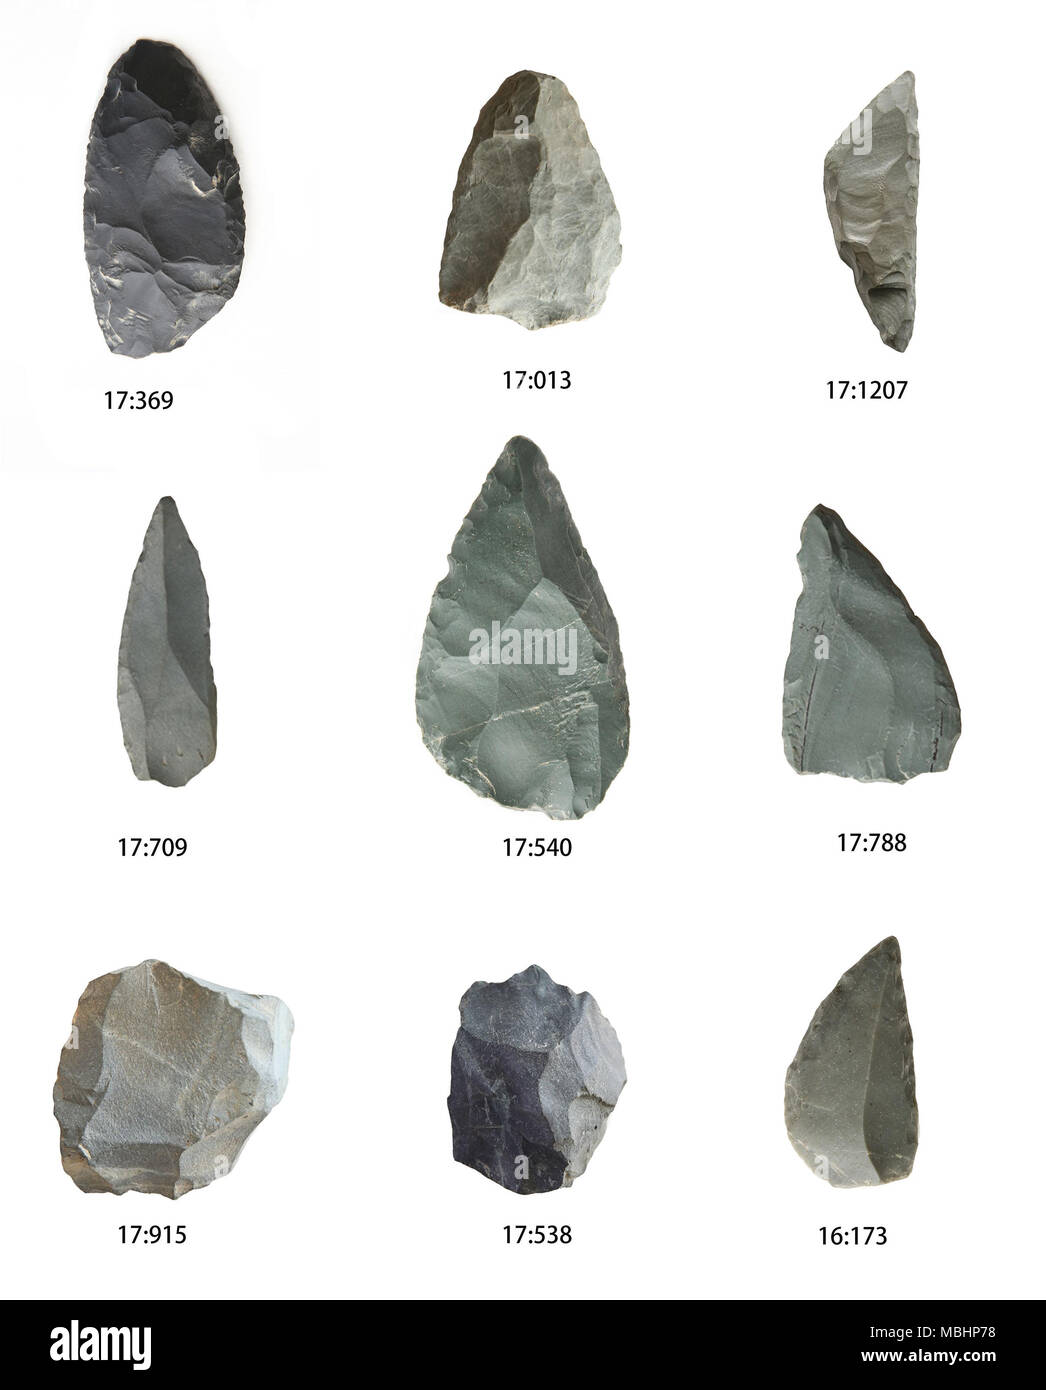 Beijing, China. 11th Apr, 2018. File photo shows a stone tool assemblage unearthed from Tongtiandong cave site in northwest China's Xinjiang Uygur Autonomous Region. It is the first Paleolithic cave site found in Xinjiang. Chinese archaeologists have selected the top 10 archaeological discoveries in China in 2017, which were published by the China Archaeological Society and a newspaper sponsored by the State Administration of Cultural Heritage on Tuesday. Credit: Xinhua/Alamy Live News - Stock Image